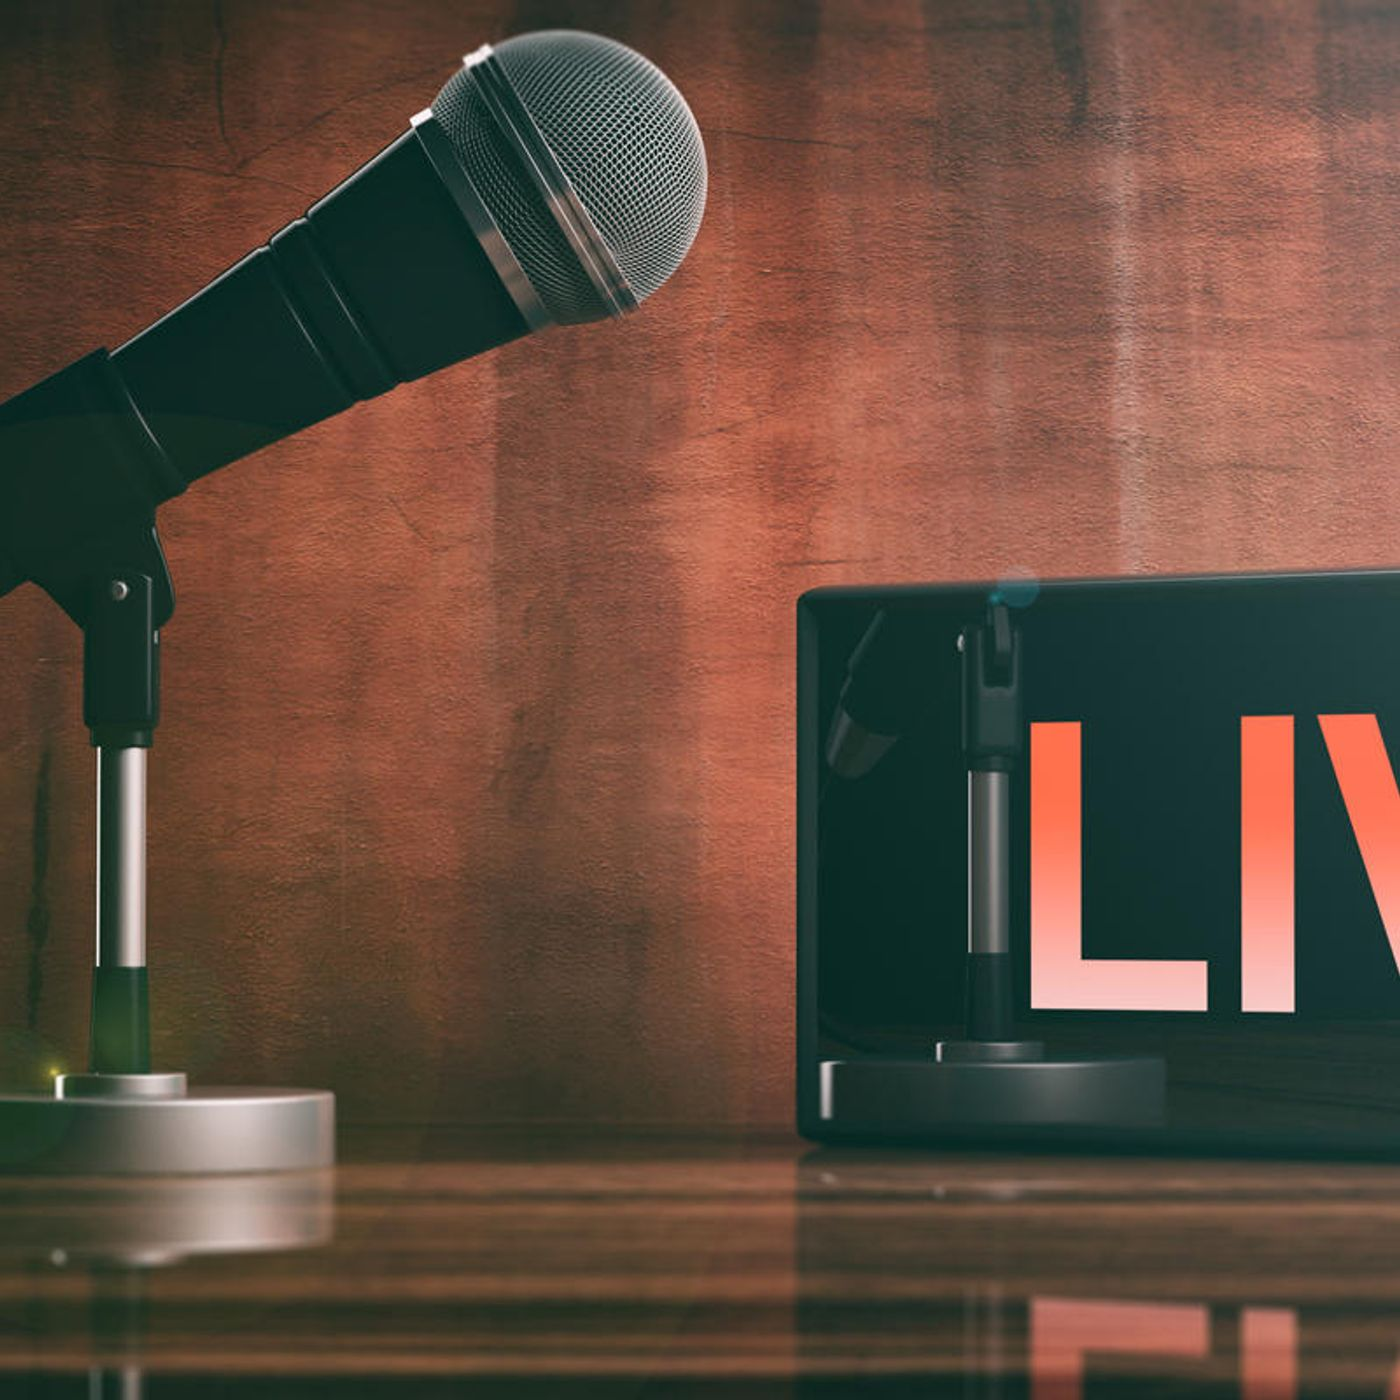 Live 365 and Spreaker Test